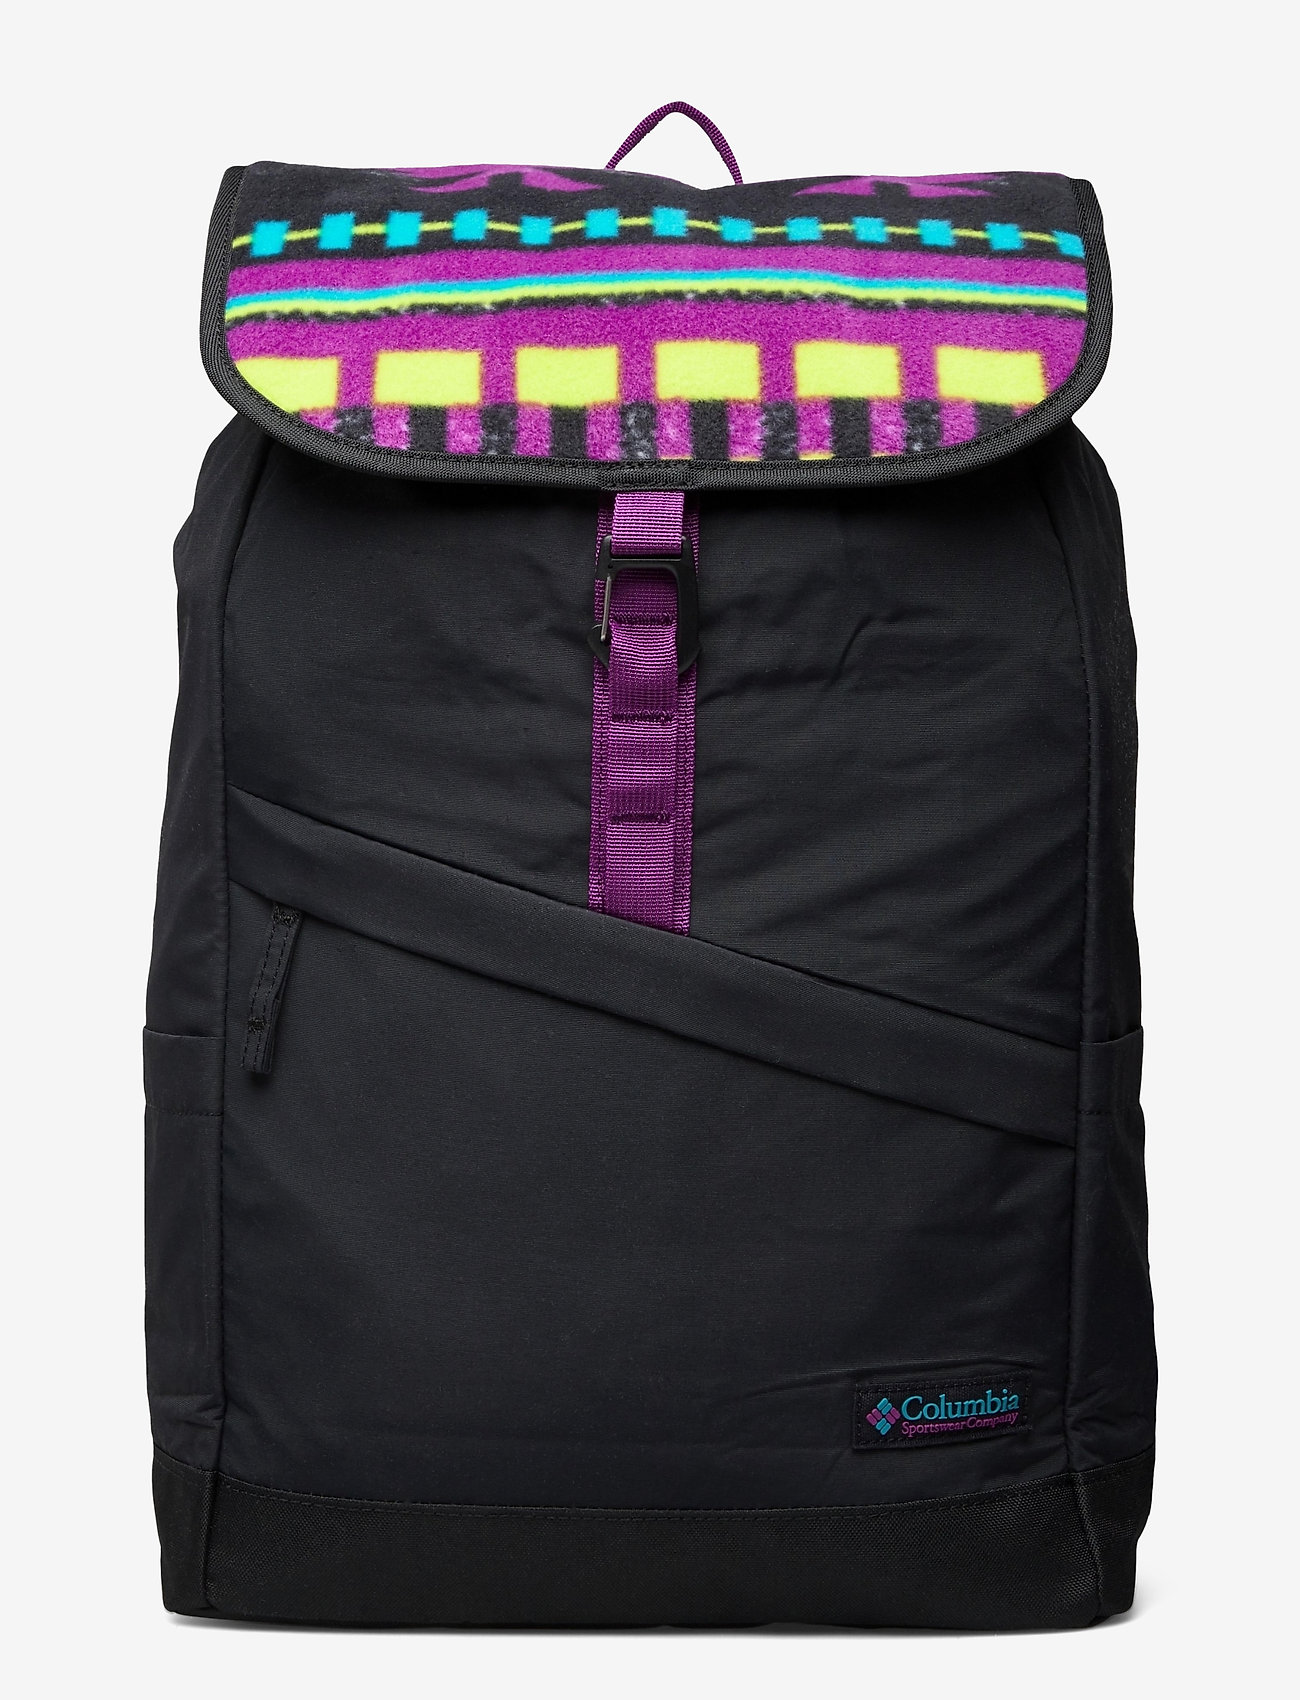 Columbia - Falmouth™ 21L Backpack - torby treningowe - black, black pr - 0